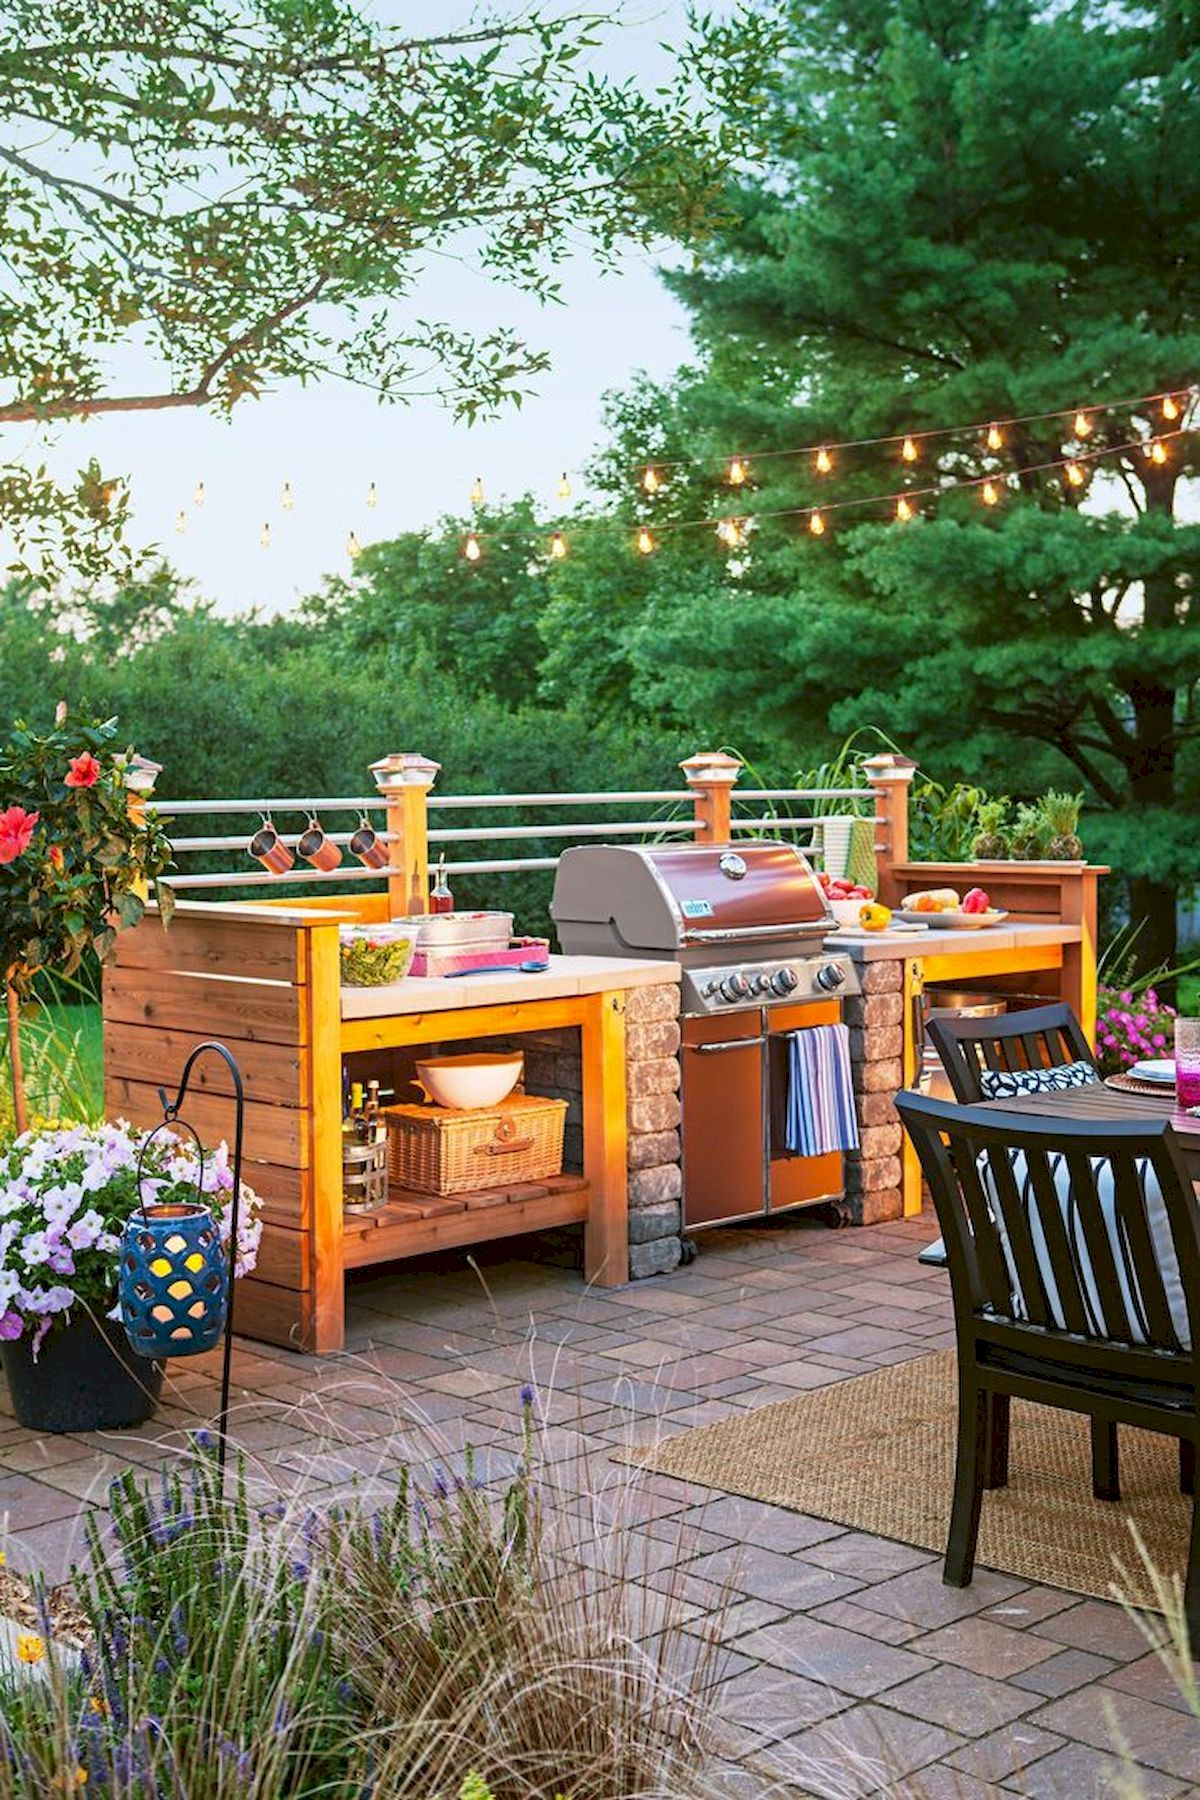 50 Awesome Summer Backyard Decor Ideas Make Your Summer Beautiful regarding 15 Some of the Coolest Ways How to Build Summer Backyard Ideas